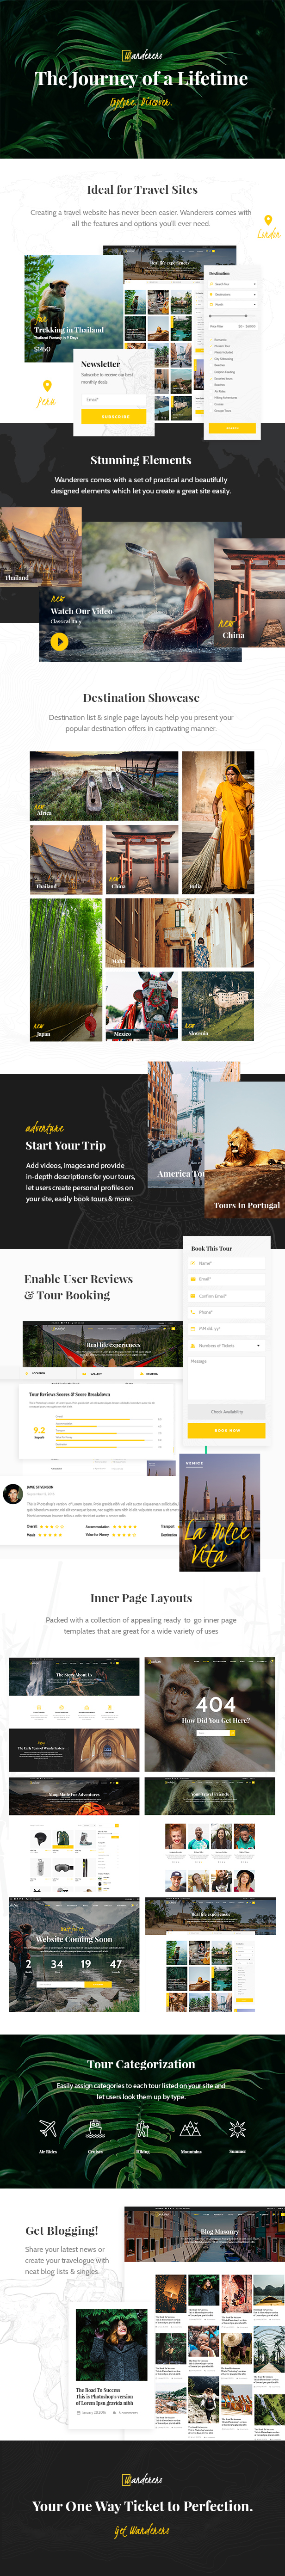 WordPress theme Wanderers - An Adventurous Theme for Travel and Tourism (Travel)